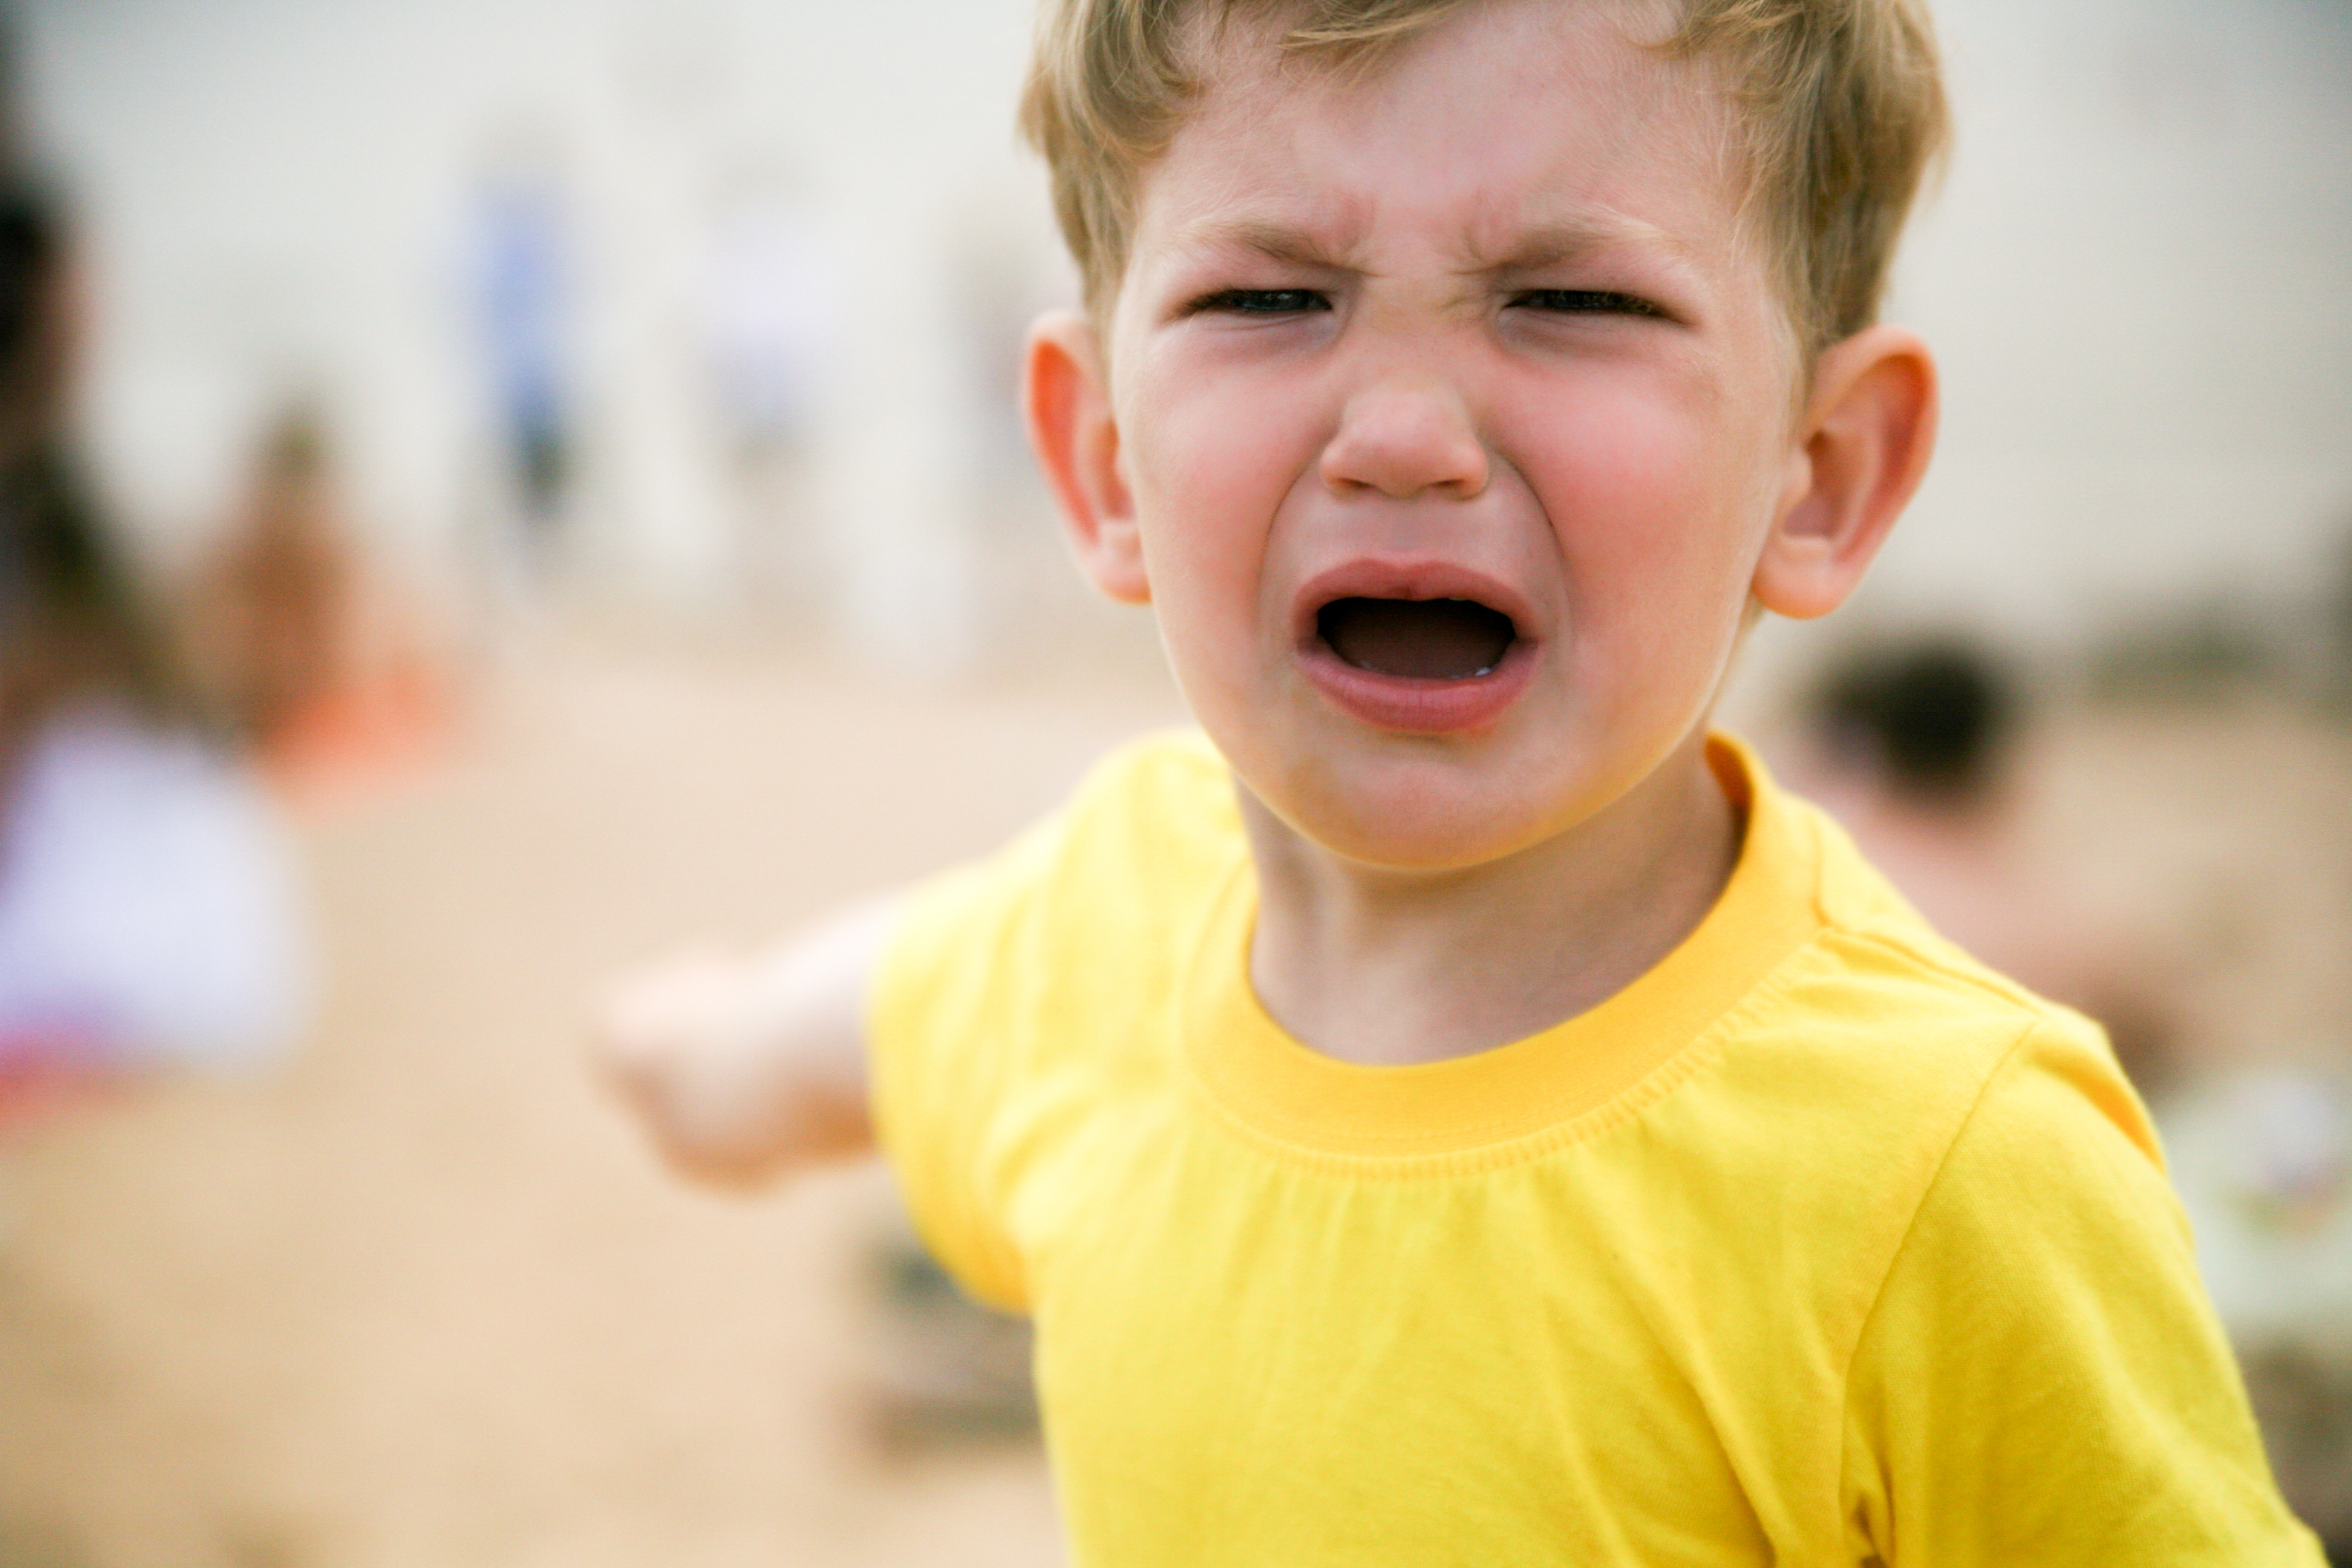 childish tantrums, tears and hysterics